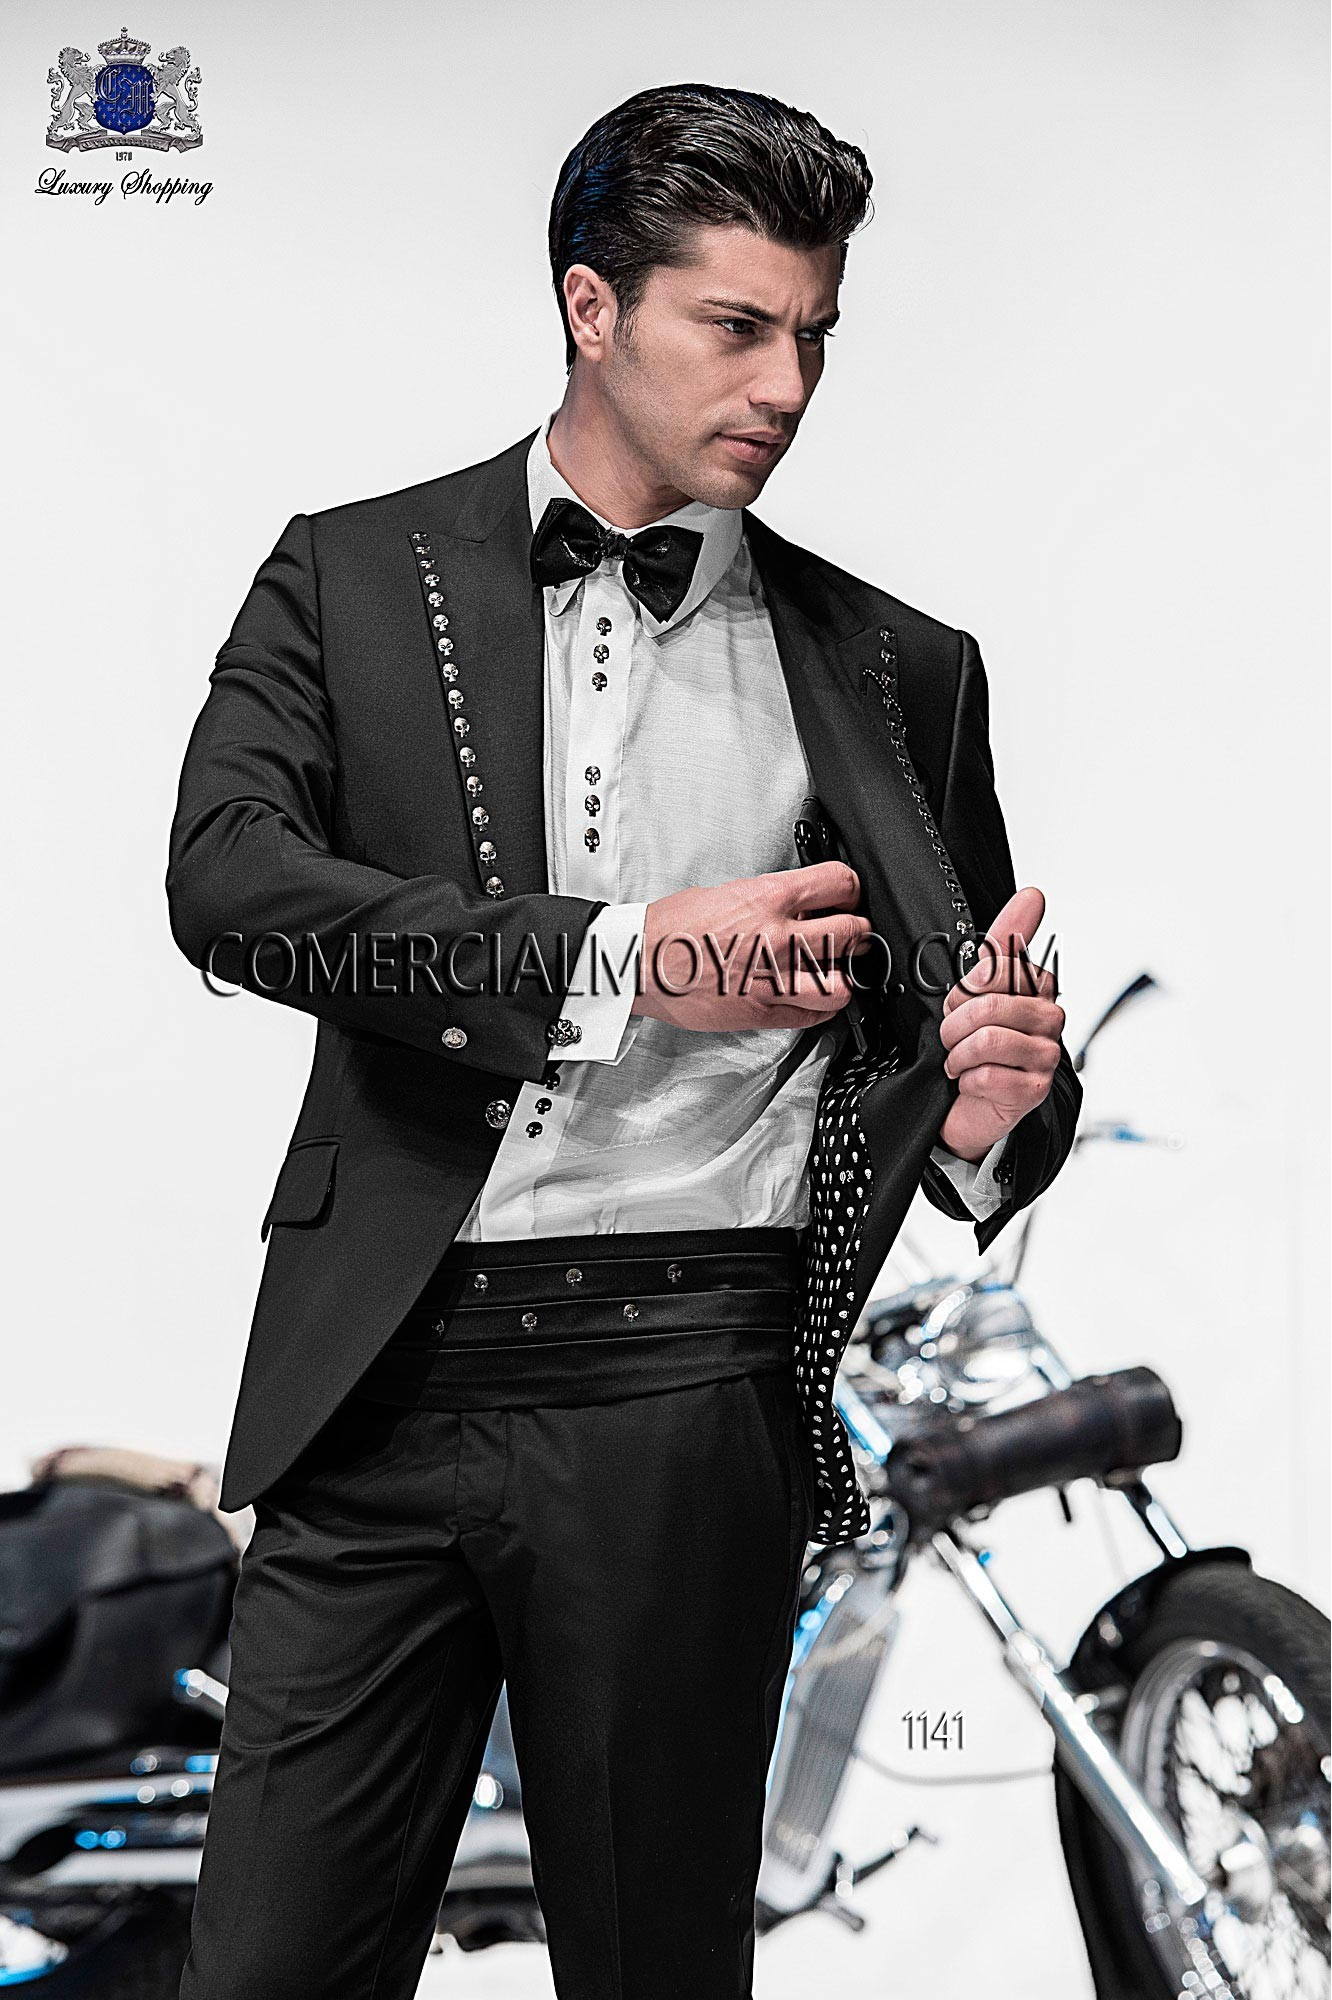 Italian bespoke black fashion suit in New Performance fabric with peak lapel with black crystal applique and single patterned button closure. Flap pockets and angled buttonholes; and single vent at back, style 1141 Ottavio Nuccio Gala, Emotion collection.